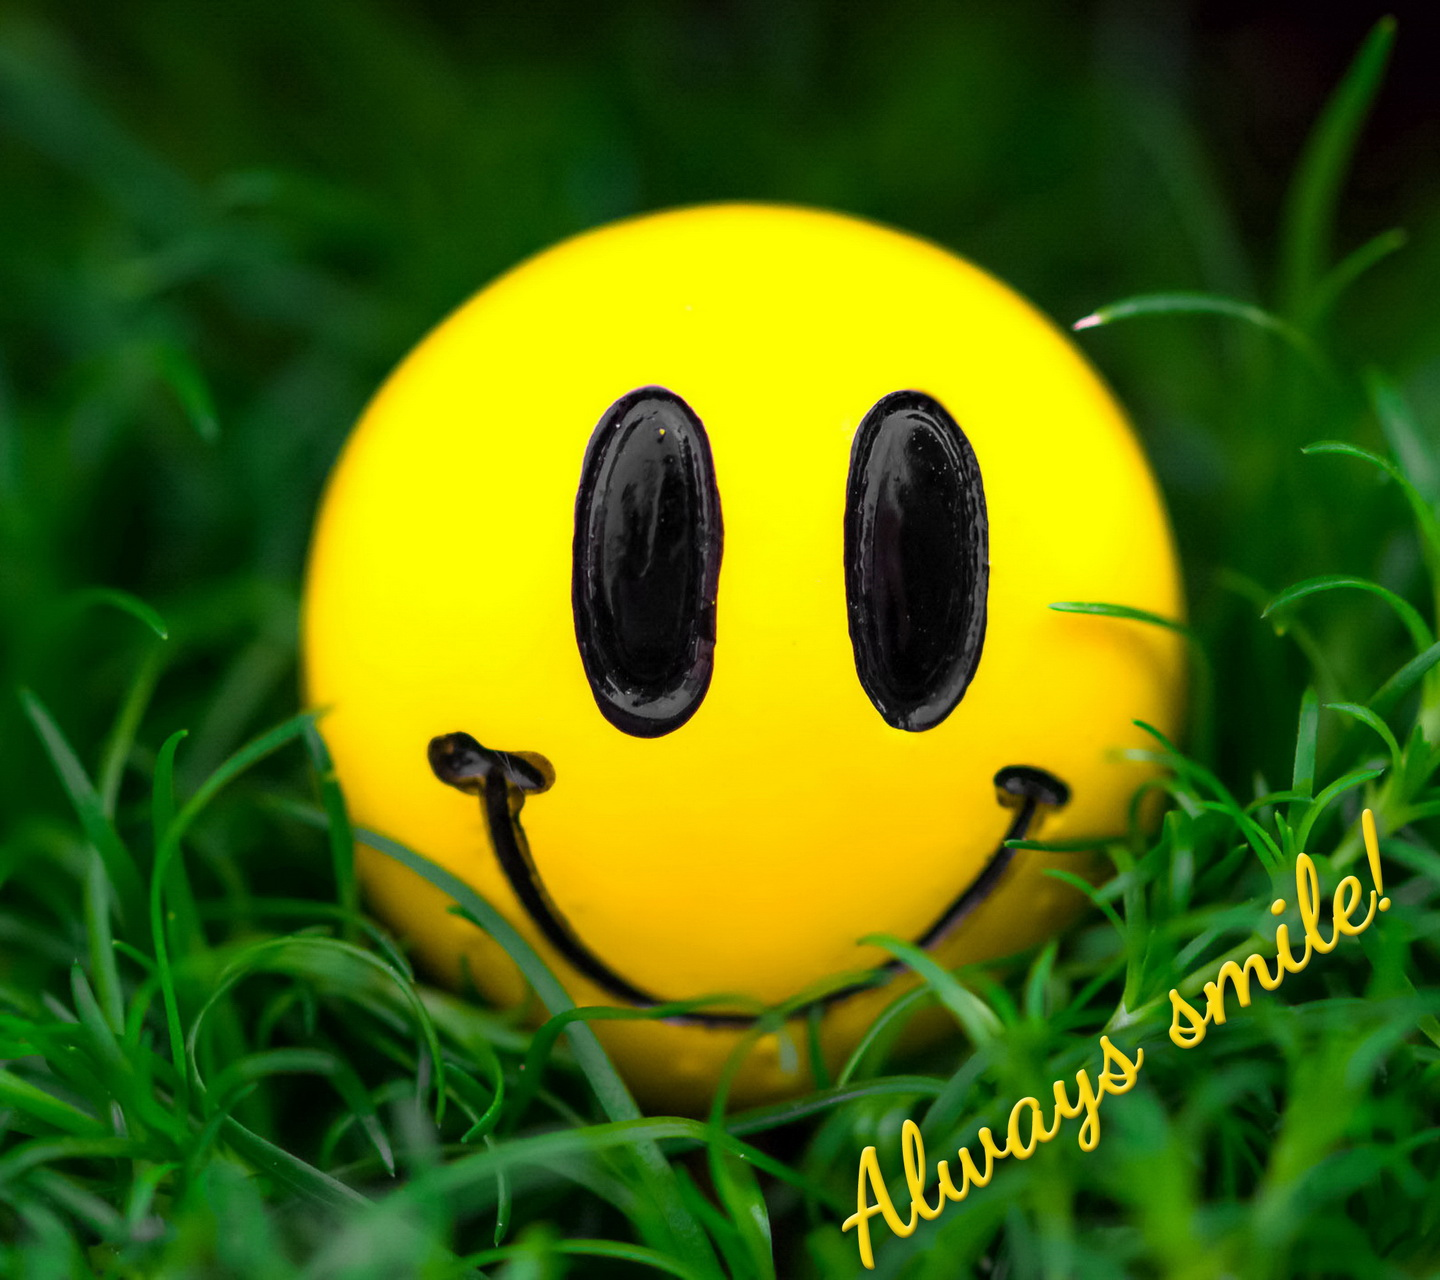 cool smiley wallpapers for mobile phones | smiley symbol